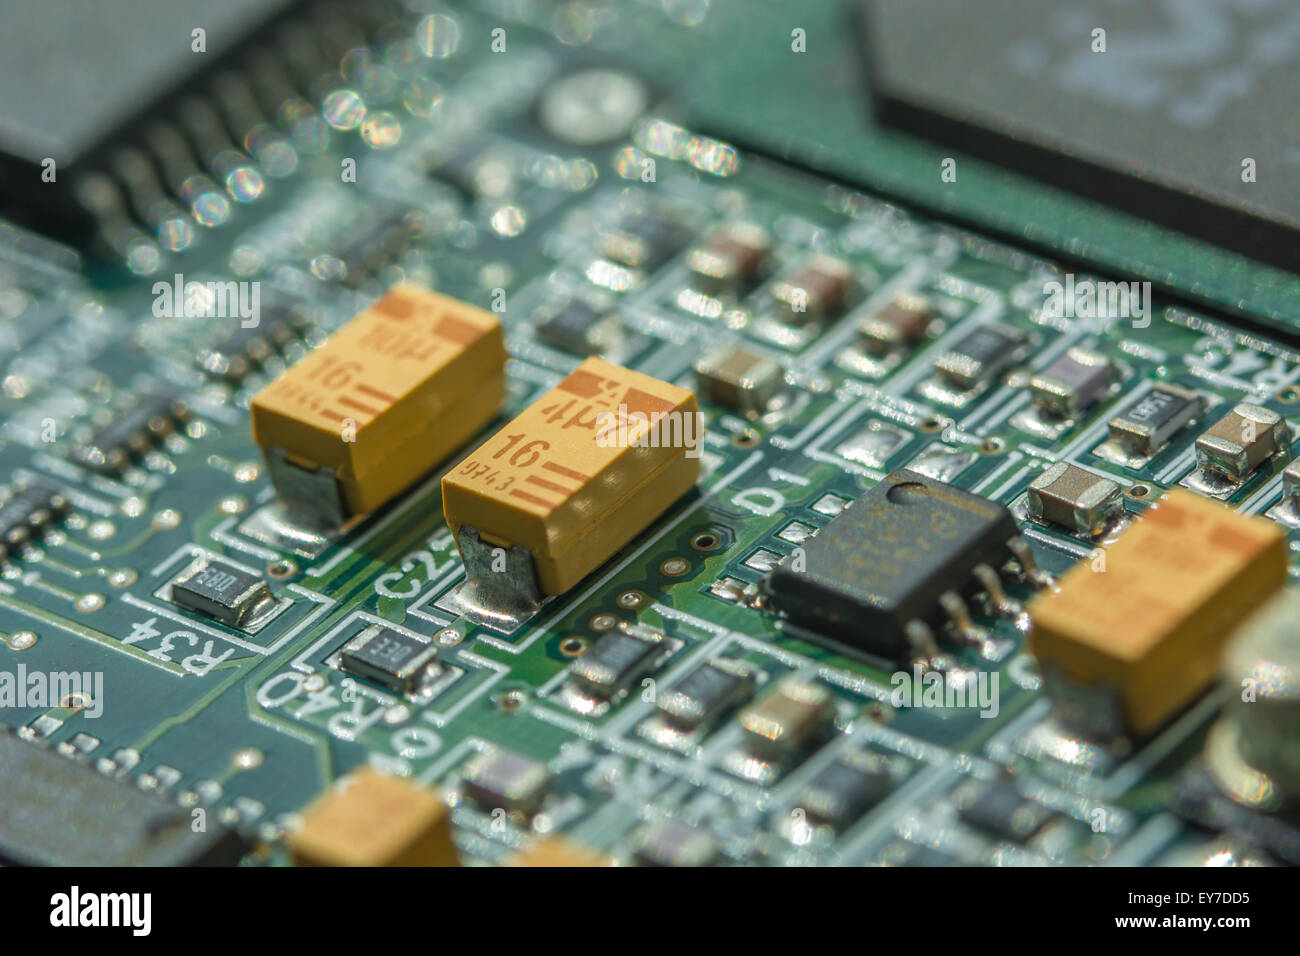 Soldering A Printed Circuit Board